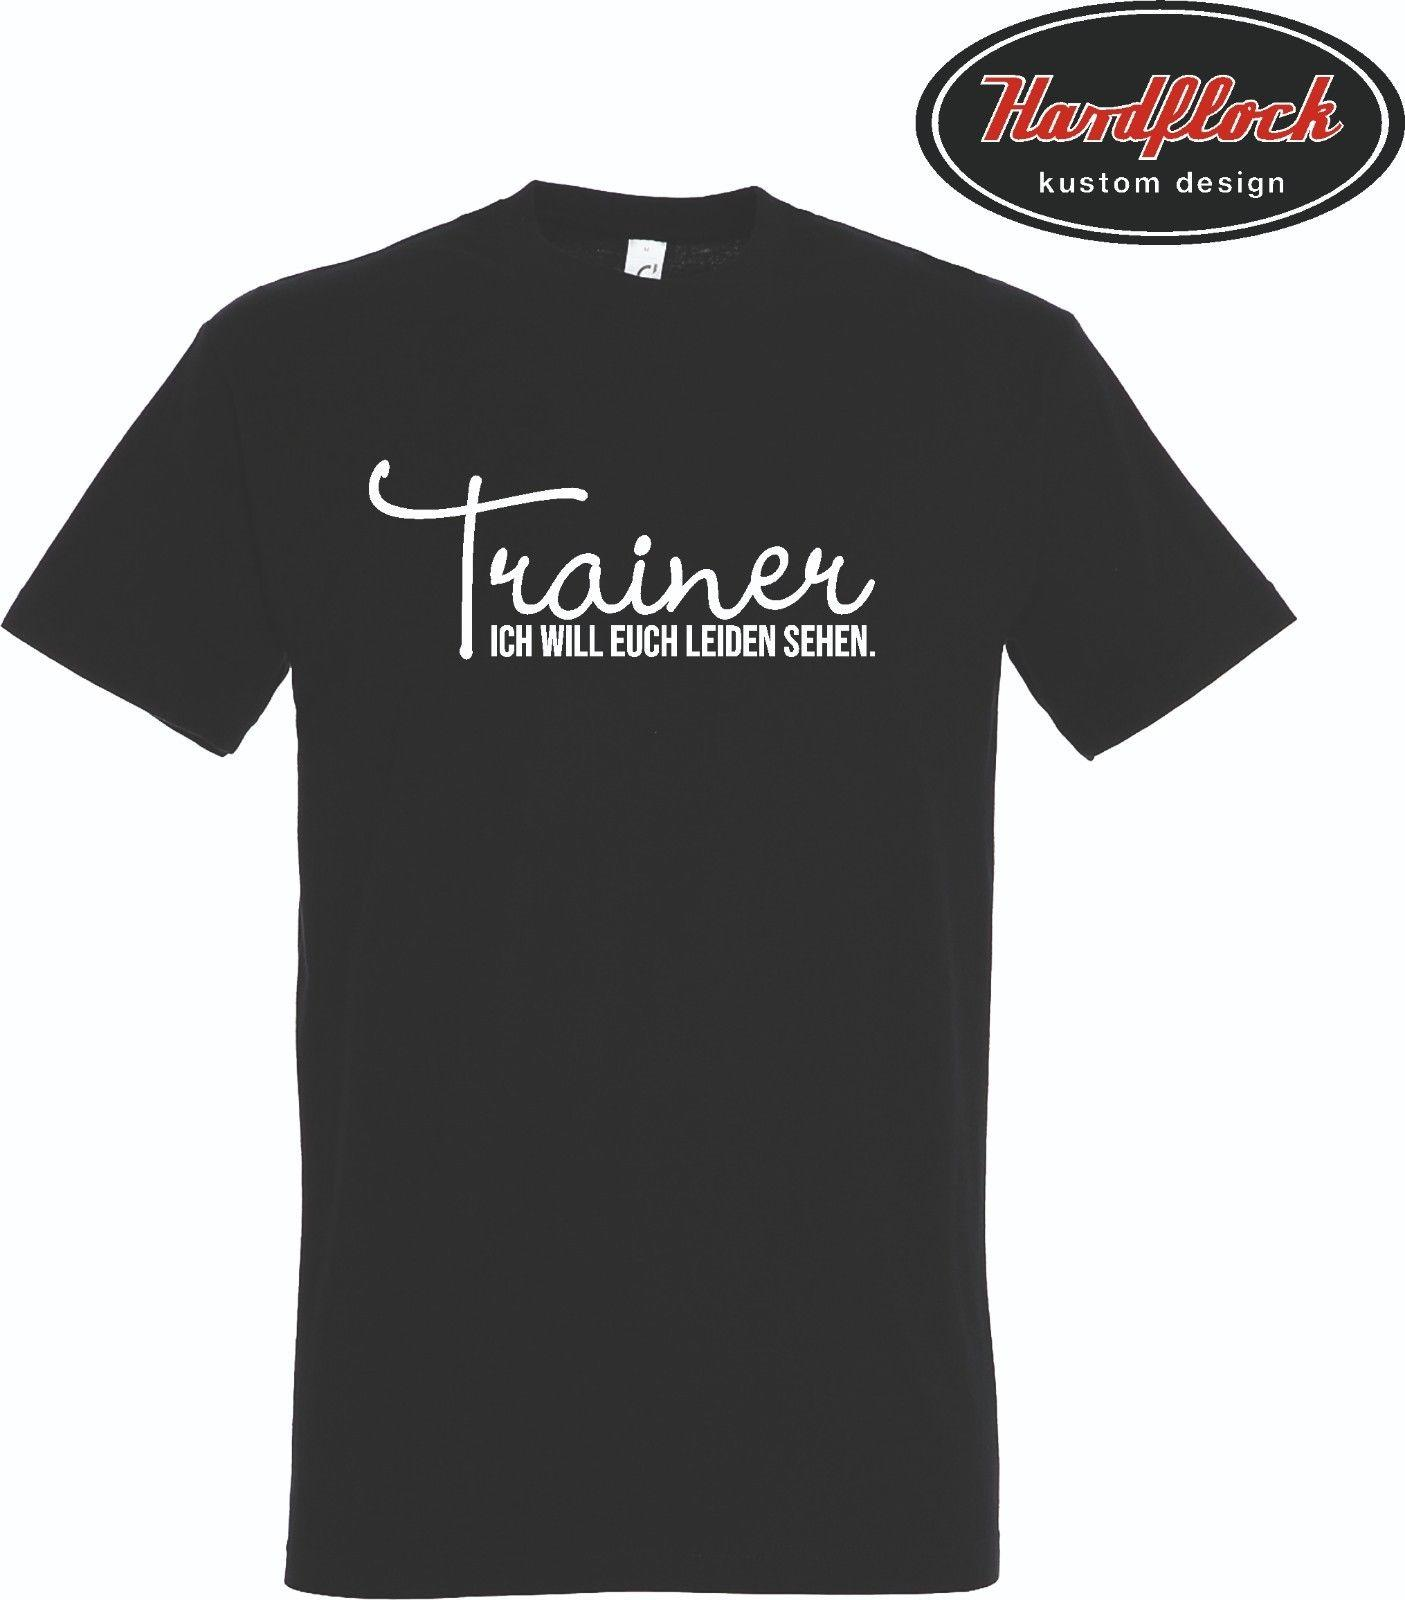 T Shirt Trainer Badminton Sport Fussball Handball Volleyball Tennis Fitness Fun Funny Unisex Casual Gift Latest Designer T Shirts Coolest Tees From